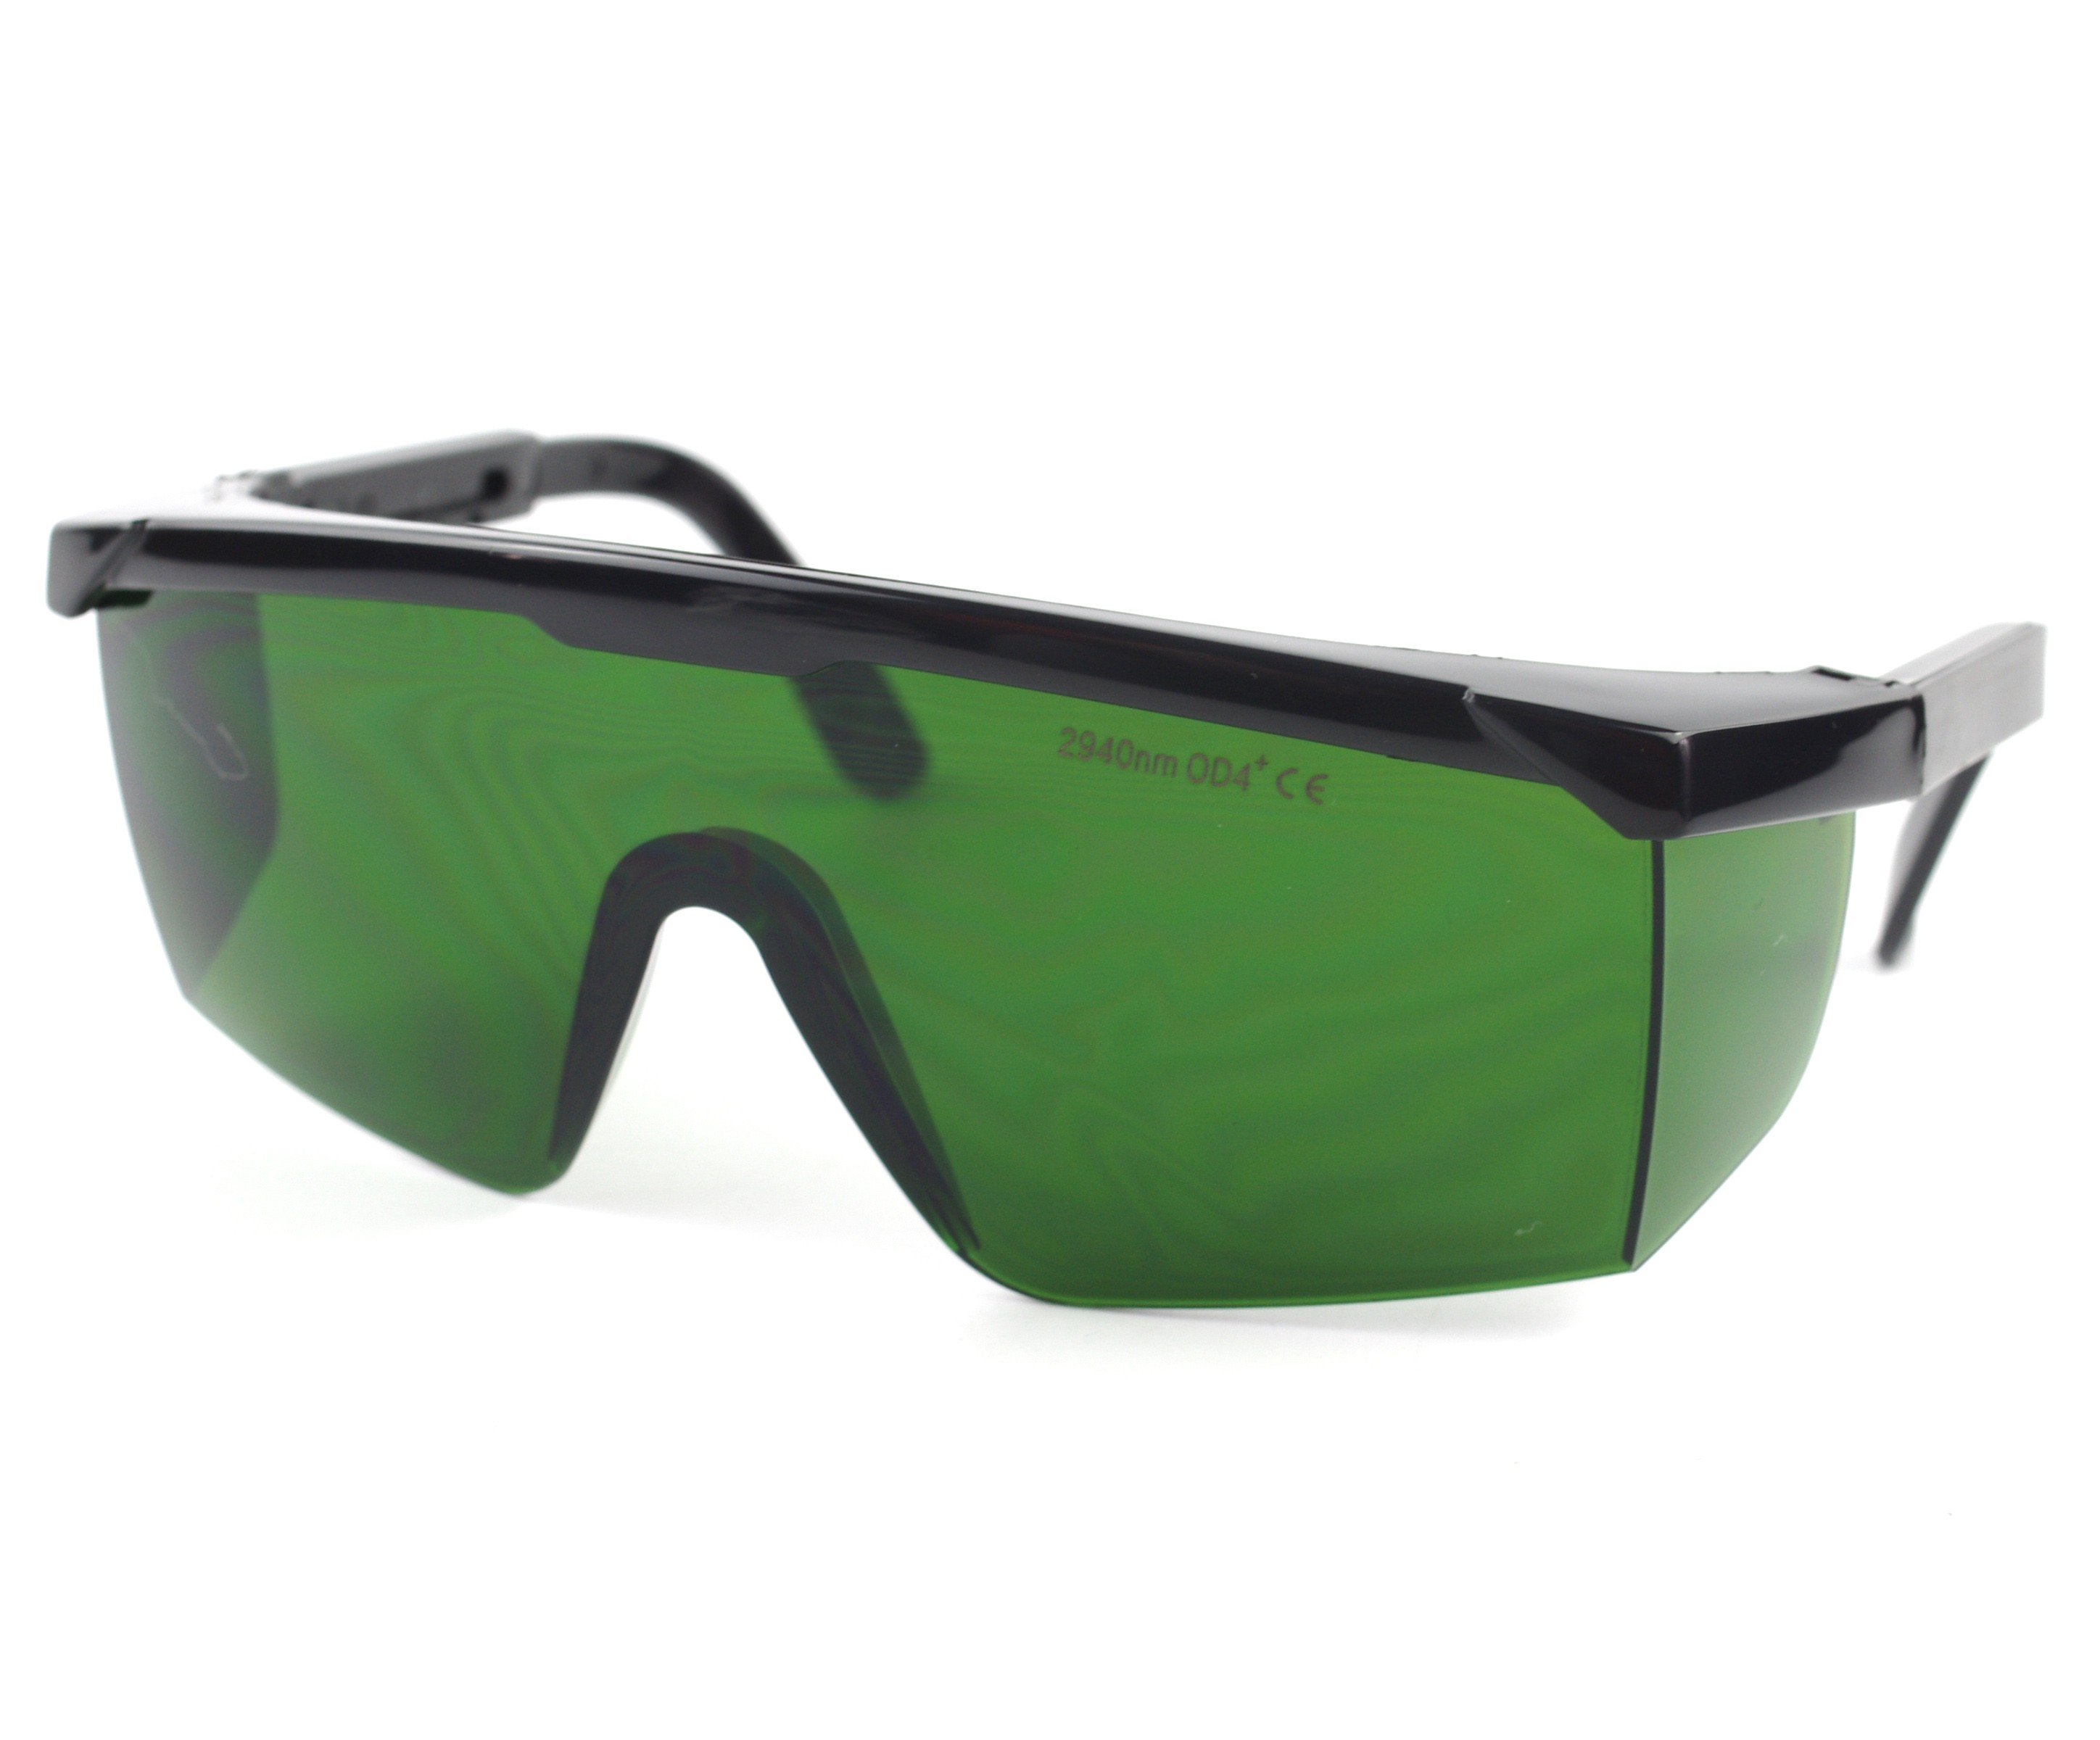 EP-ERL 2940nm OD4+ Er:YAG Laser Protective Goggles Safety Glasses T=30% CE